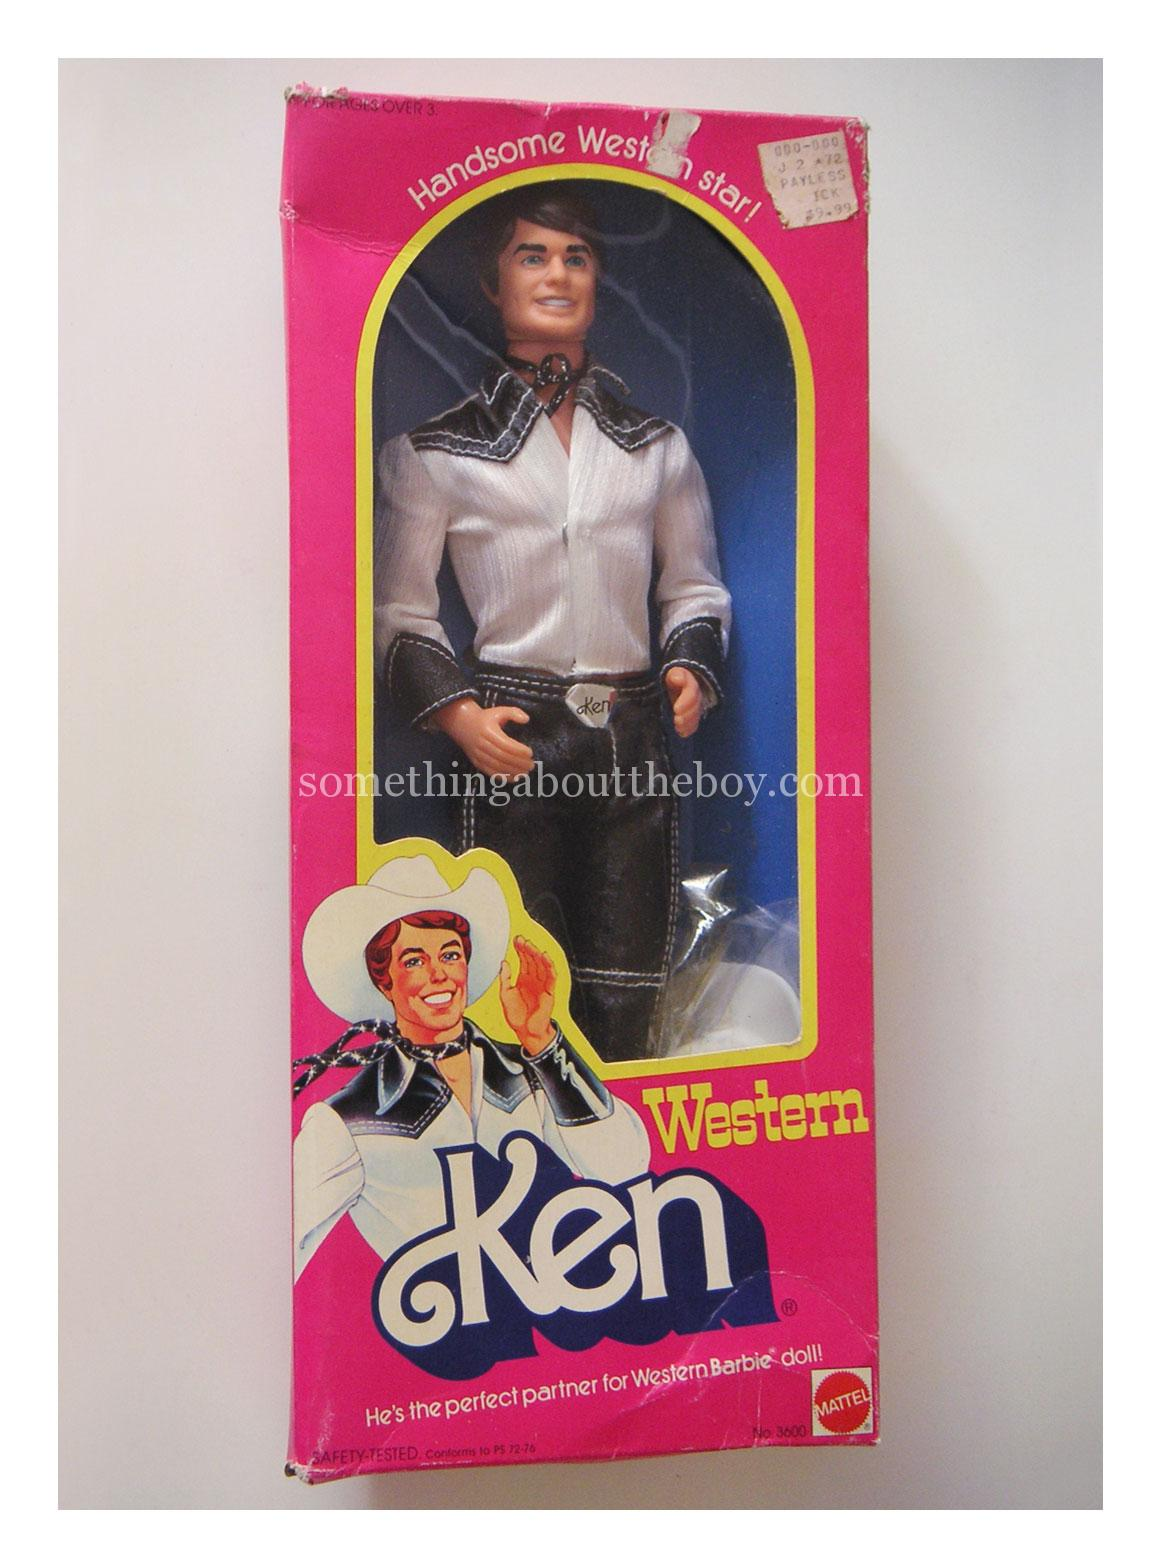 1981 #3600 Western Ken in original packaging